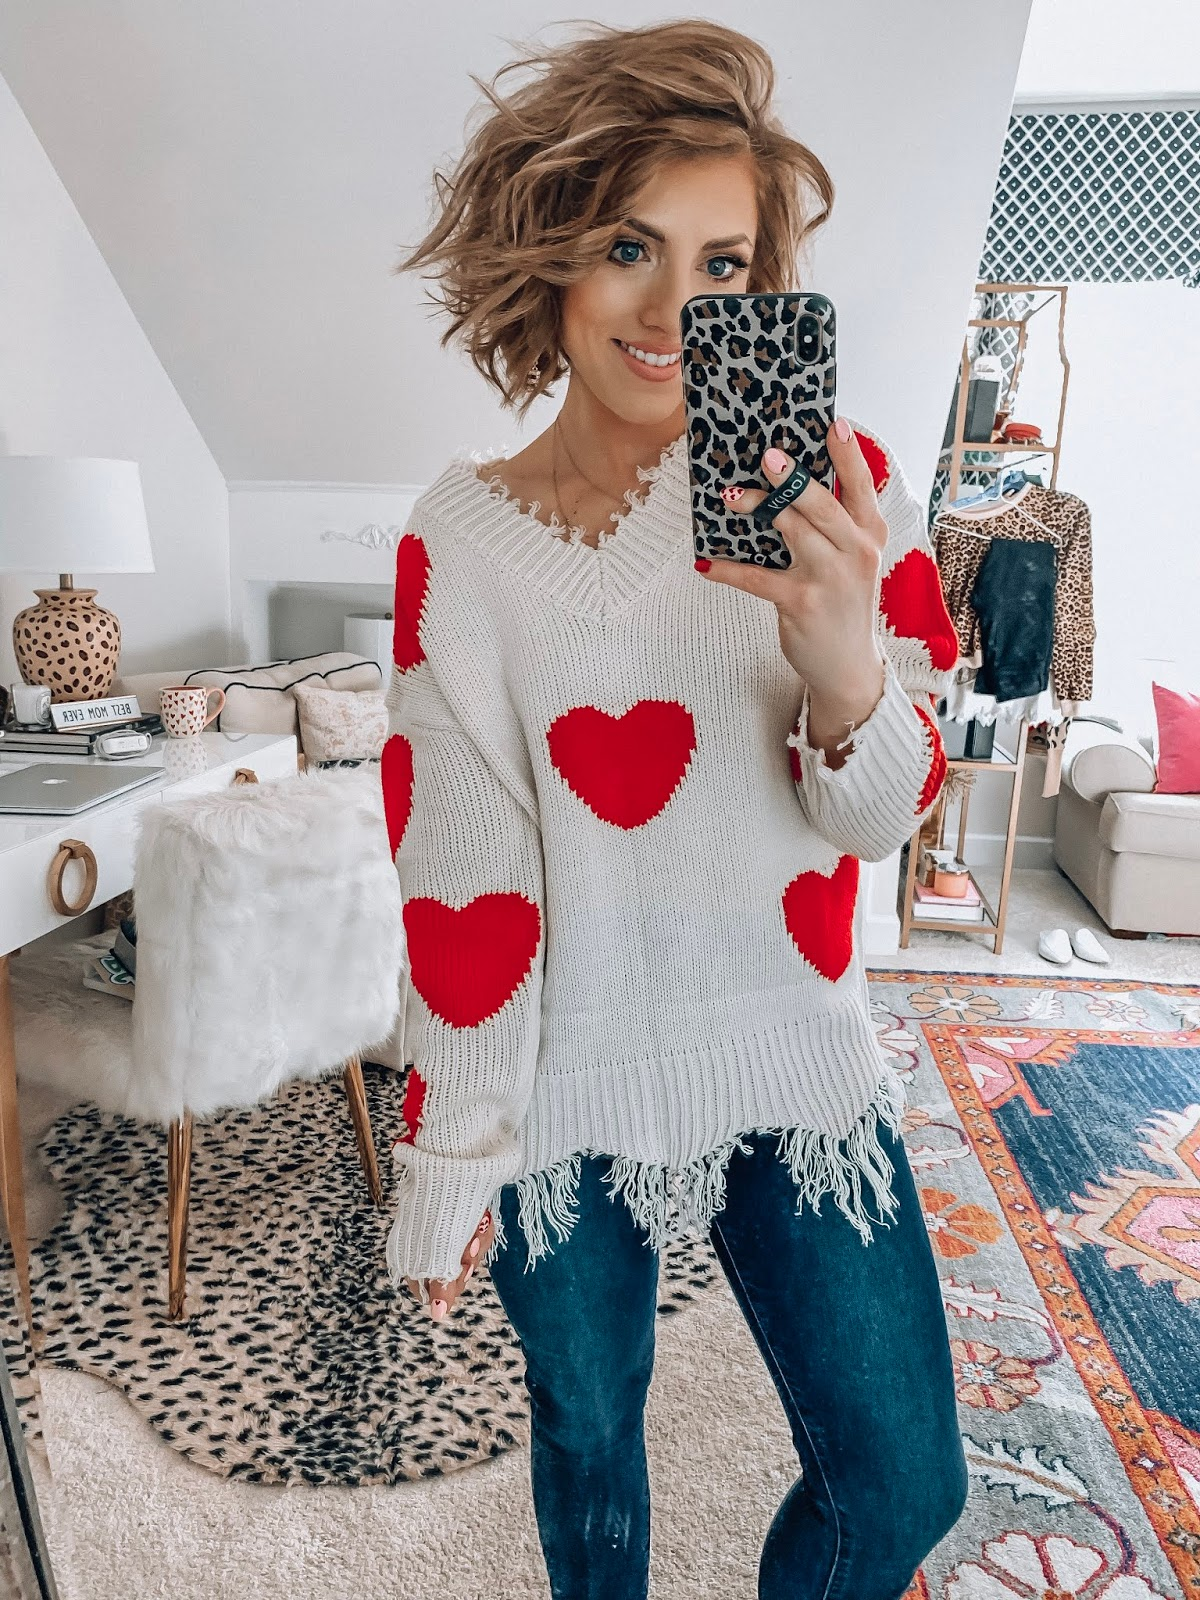 Recent Amazon Finds: Valentine Heart Sweaters, Leopard and More - Something Delightful Blog #ValentineSweater #ValentinesDay #AmazonFashion #AffordableFashion #Hearts #WhatToWear